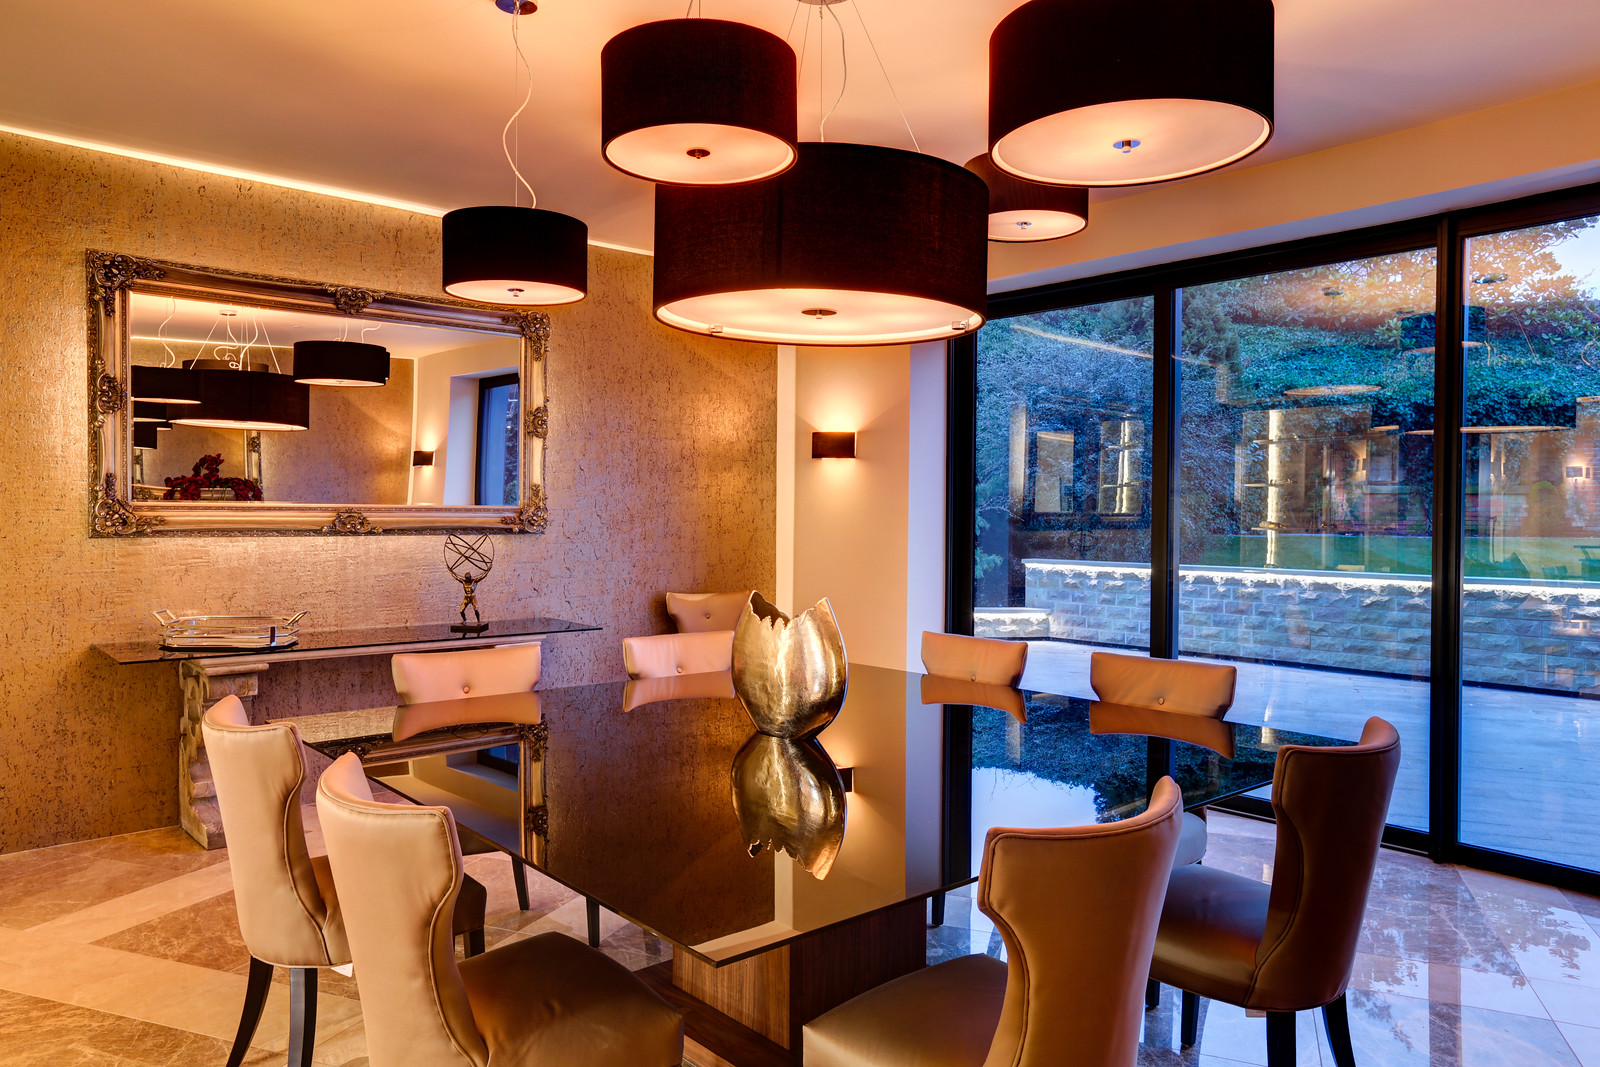 Luxurious dining space in Tanglewood, Colston Bassett by luxury home builder Guy Phoenix